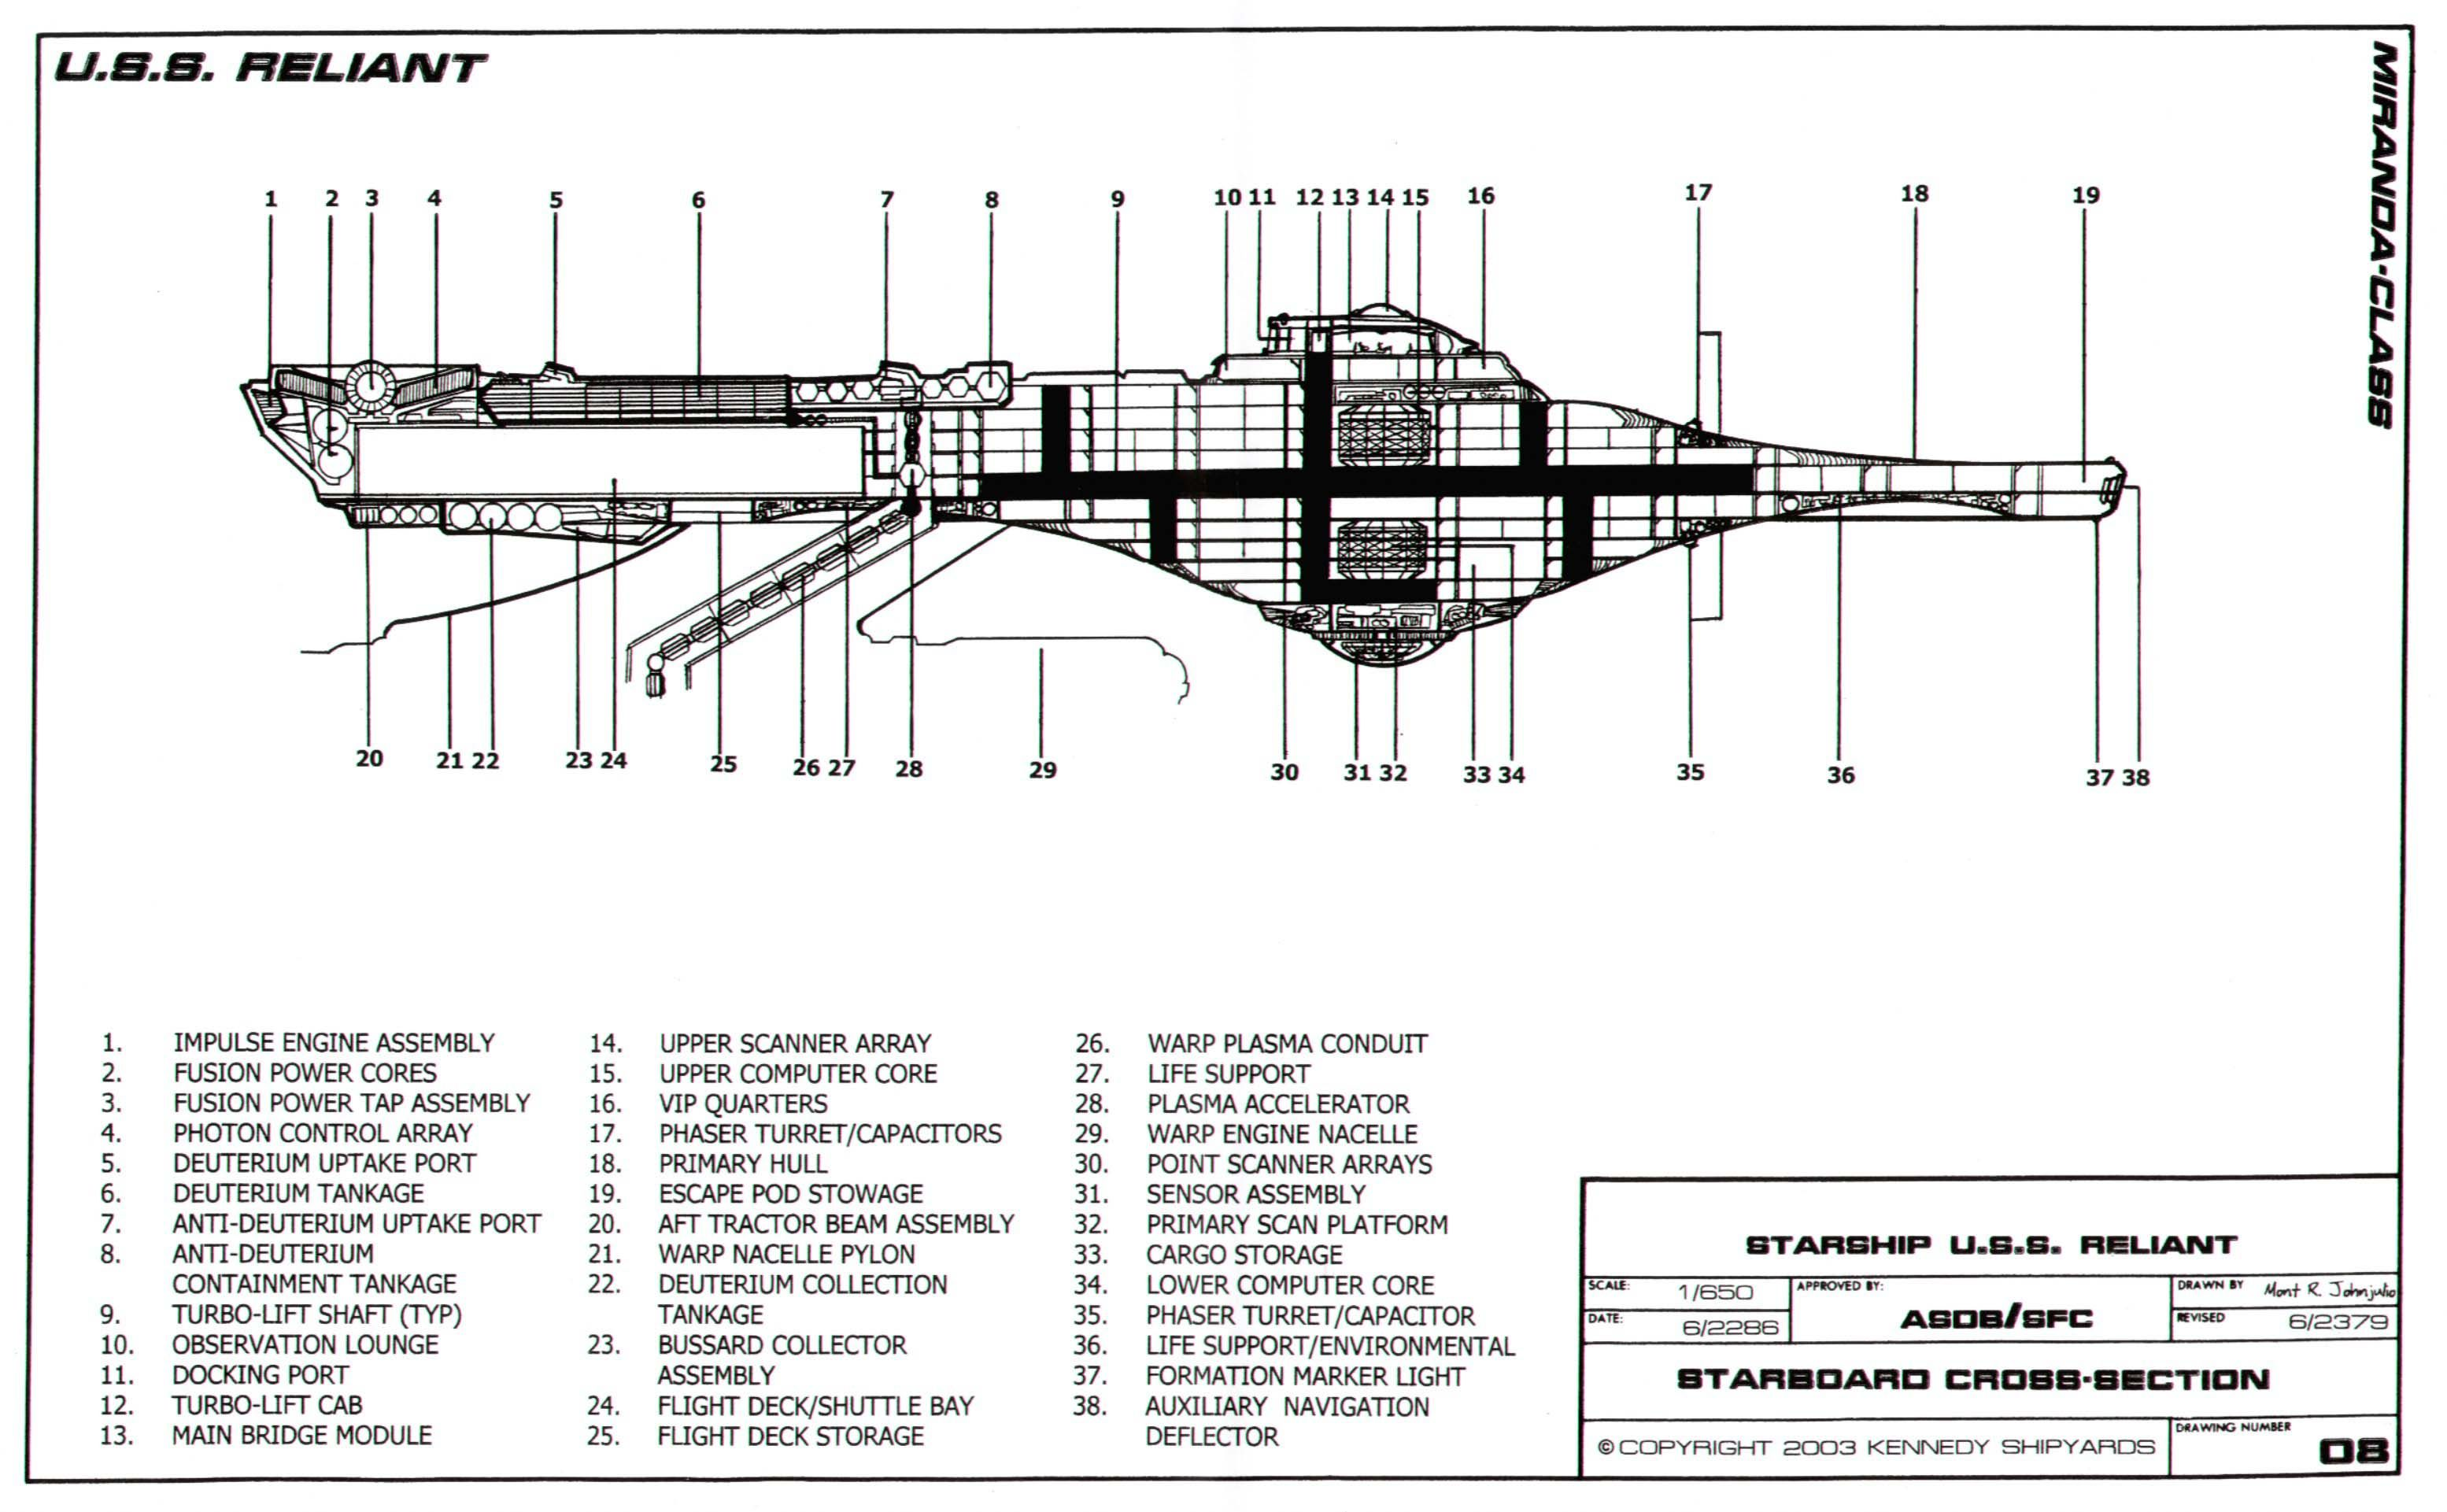 Reliant Cross Section